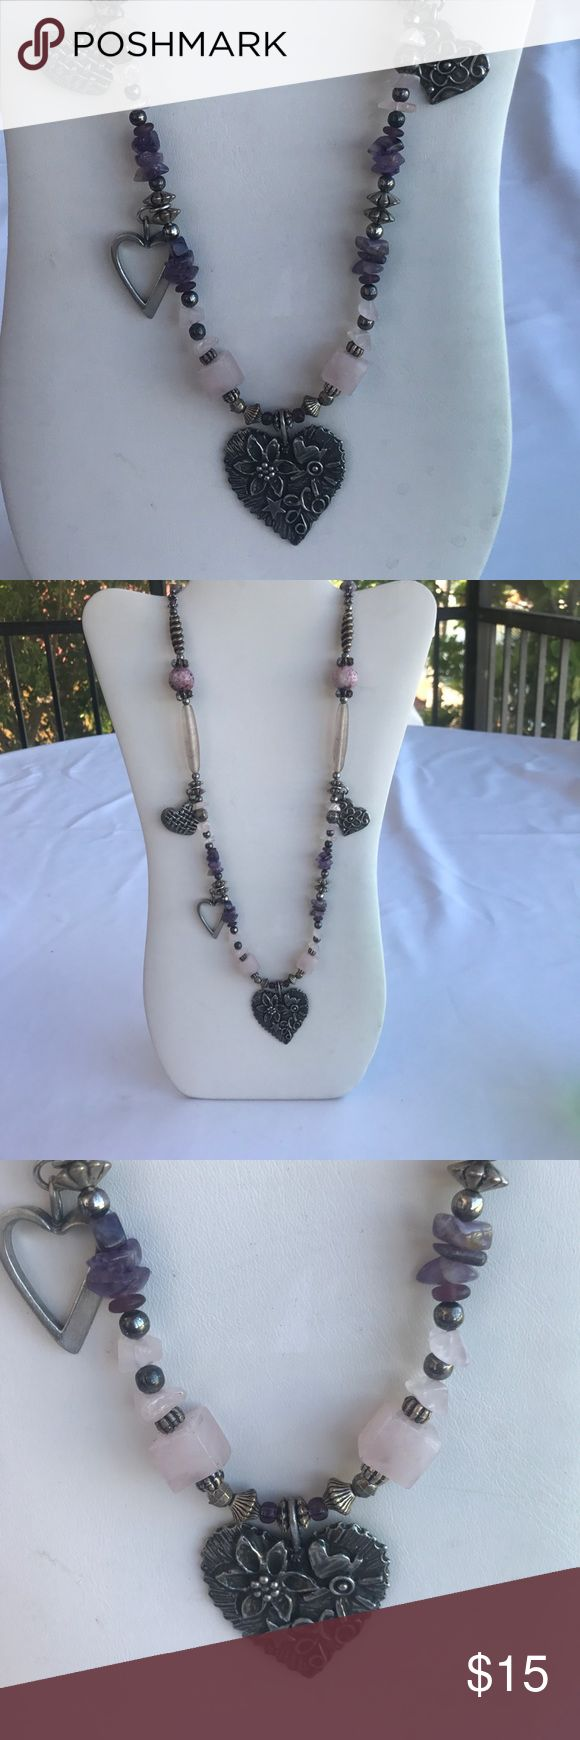 ❤️❤️ Long heart beaded necklace Very cute necklace the large heart is signed  I think it's says MARDE.  I was unable to find out any information on the signature. The chain is made with Silvertone beads and hearts in between those beads are  round amethyst rough-cut  amethyst, pink quartz and small little beads which may also be an amethyst.  Bundle of three or more items to receive 15% off. I ship same day or next. Jewelry Necklaces